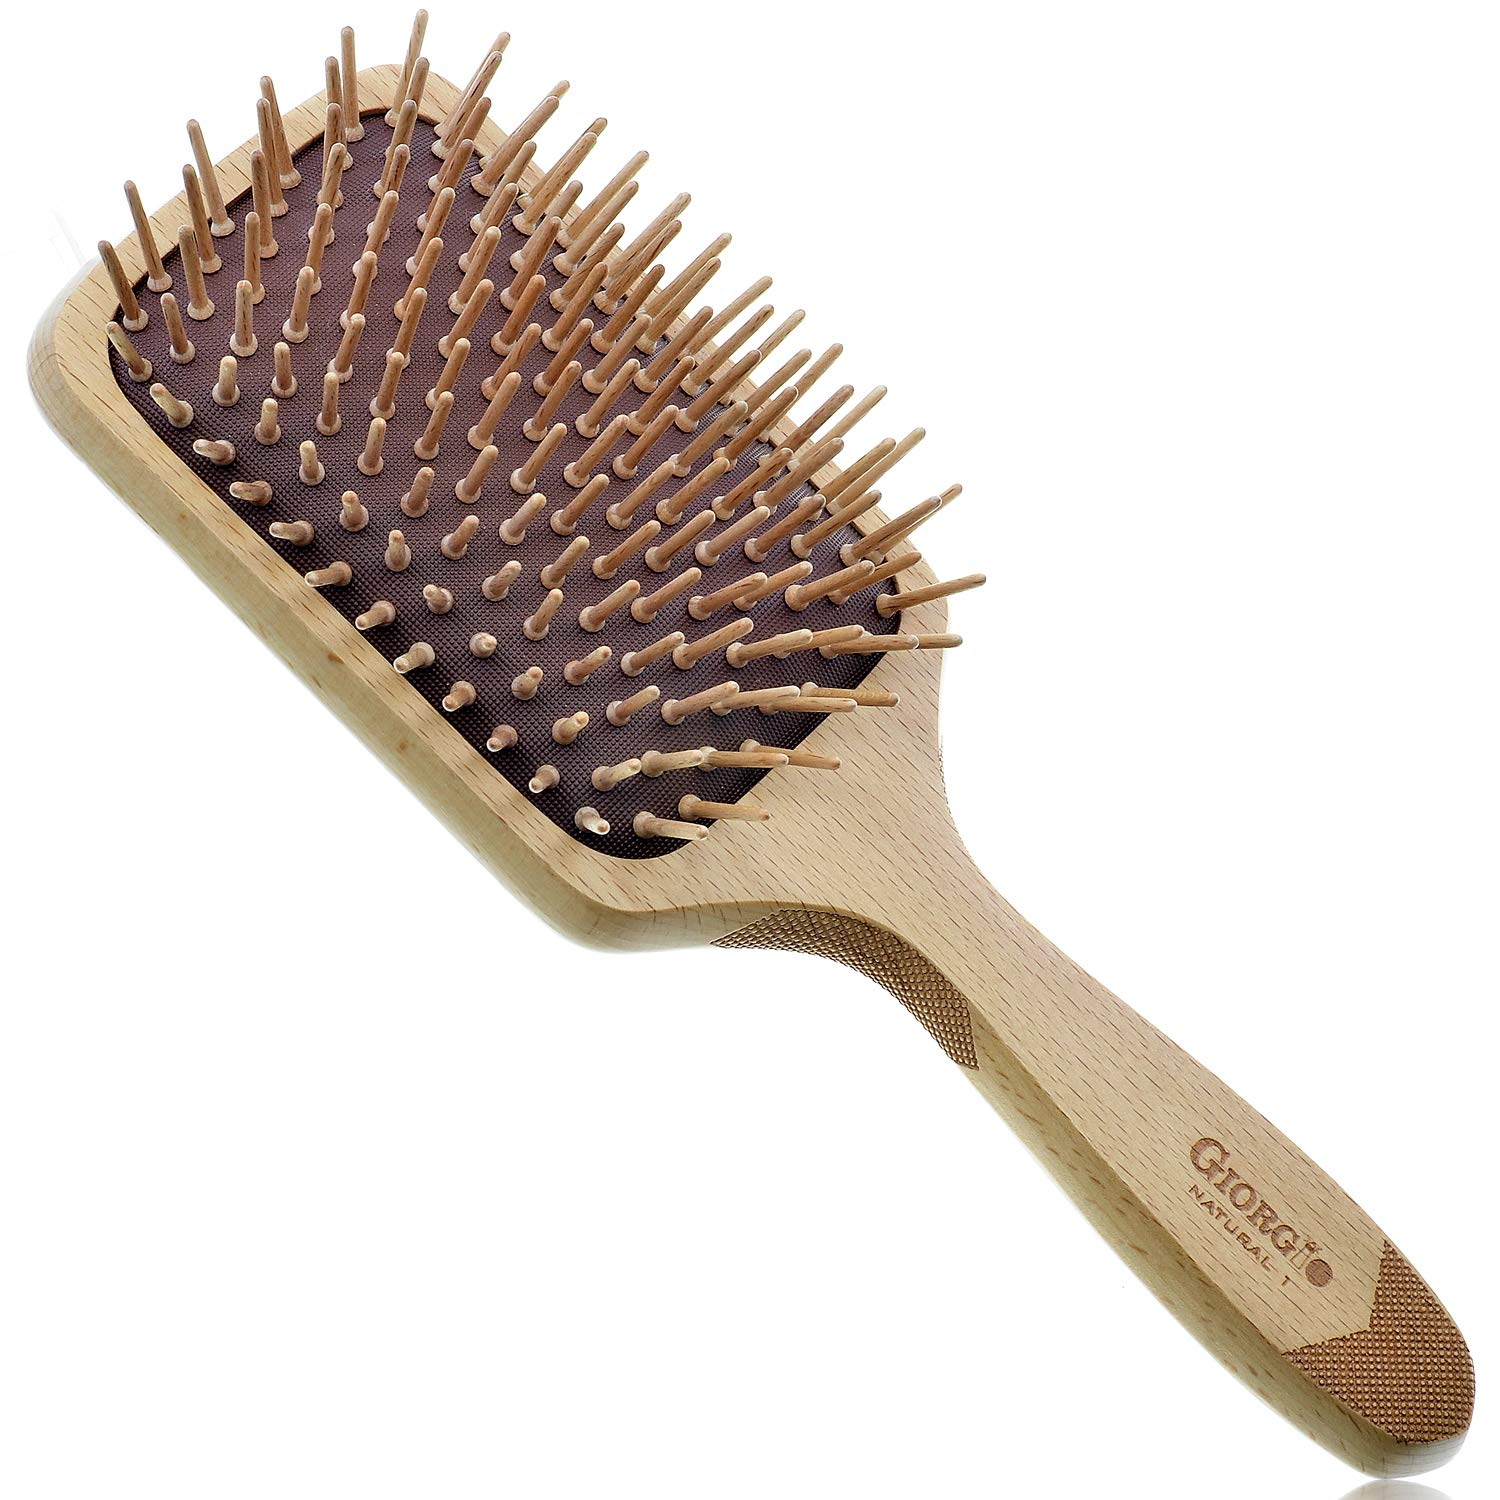 Giorgio Eco Friendly Wooden Bristle Hairbrush - Large Detangling Brush and Hair Growth Brush for Thick or Long Hair - Paddle Hair Brush Made with Anti Static Beechwood and Silicone Massage Cushion